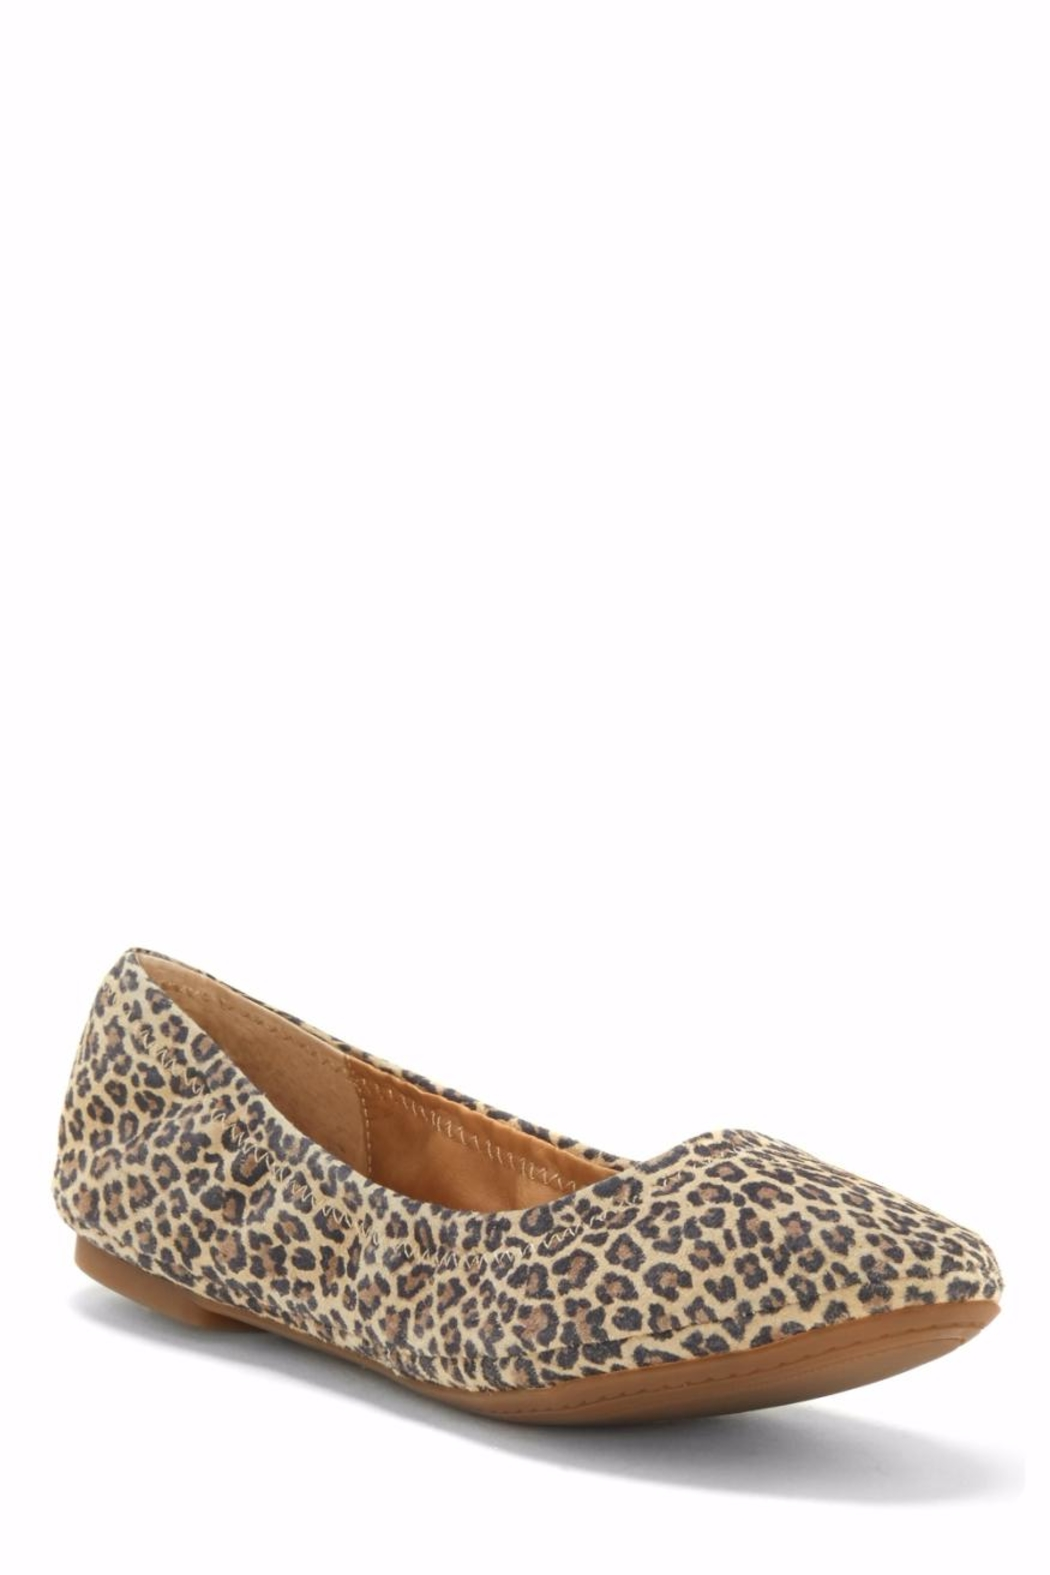 Lucky Brand Emmie Flat Shoes - Front Full Image